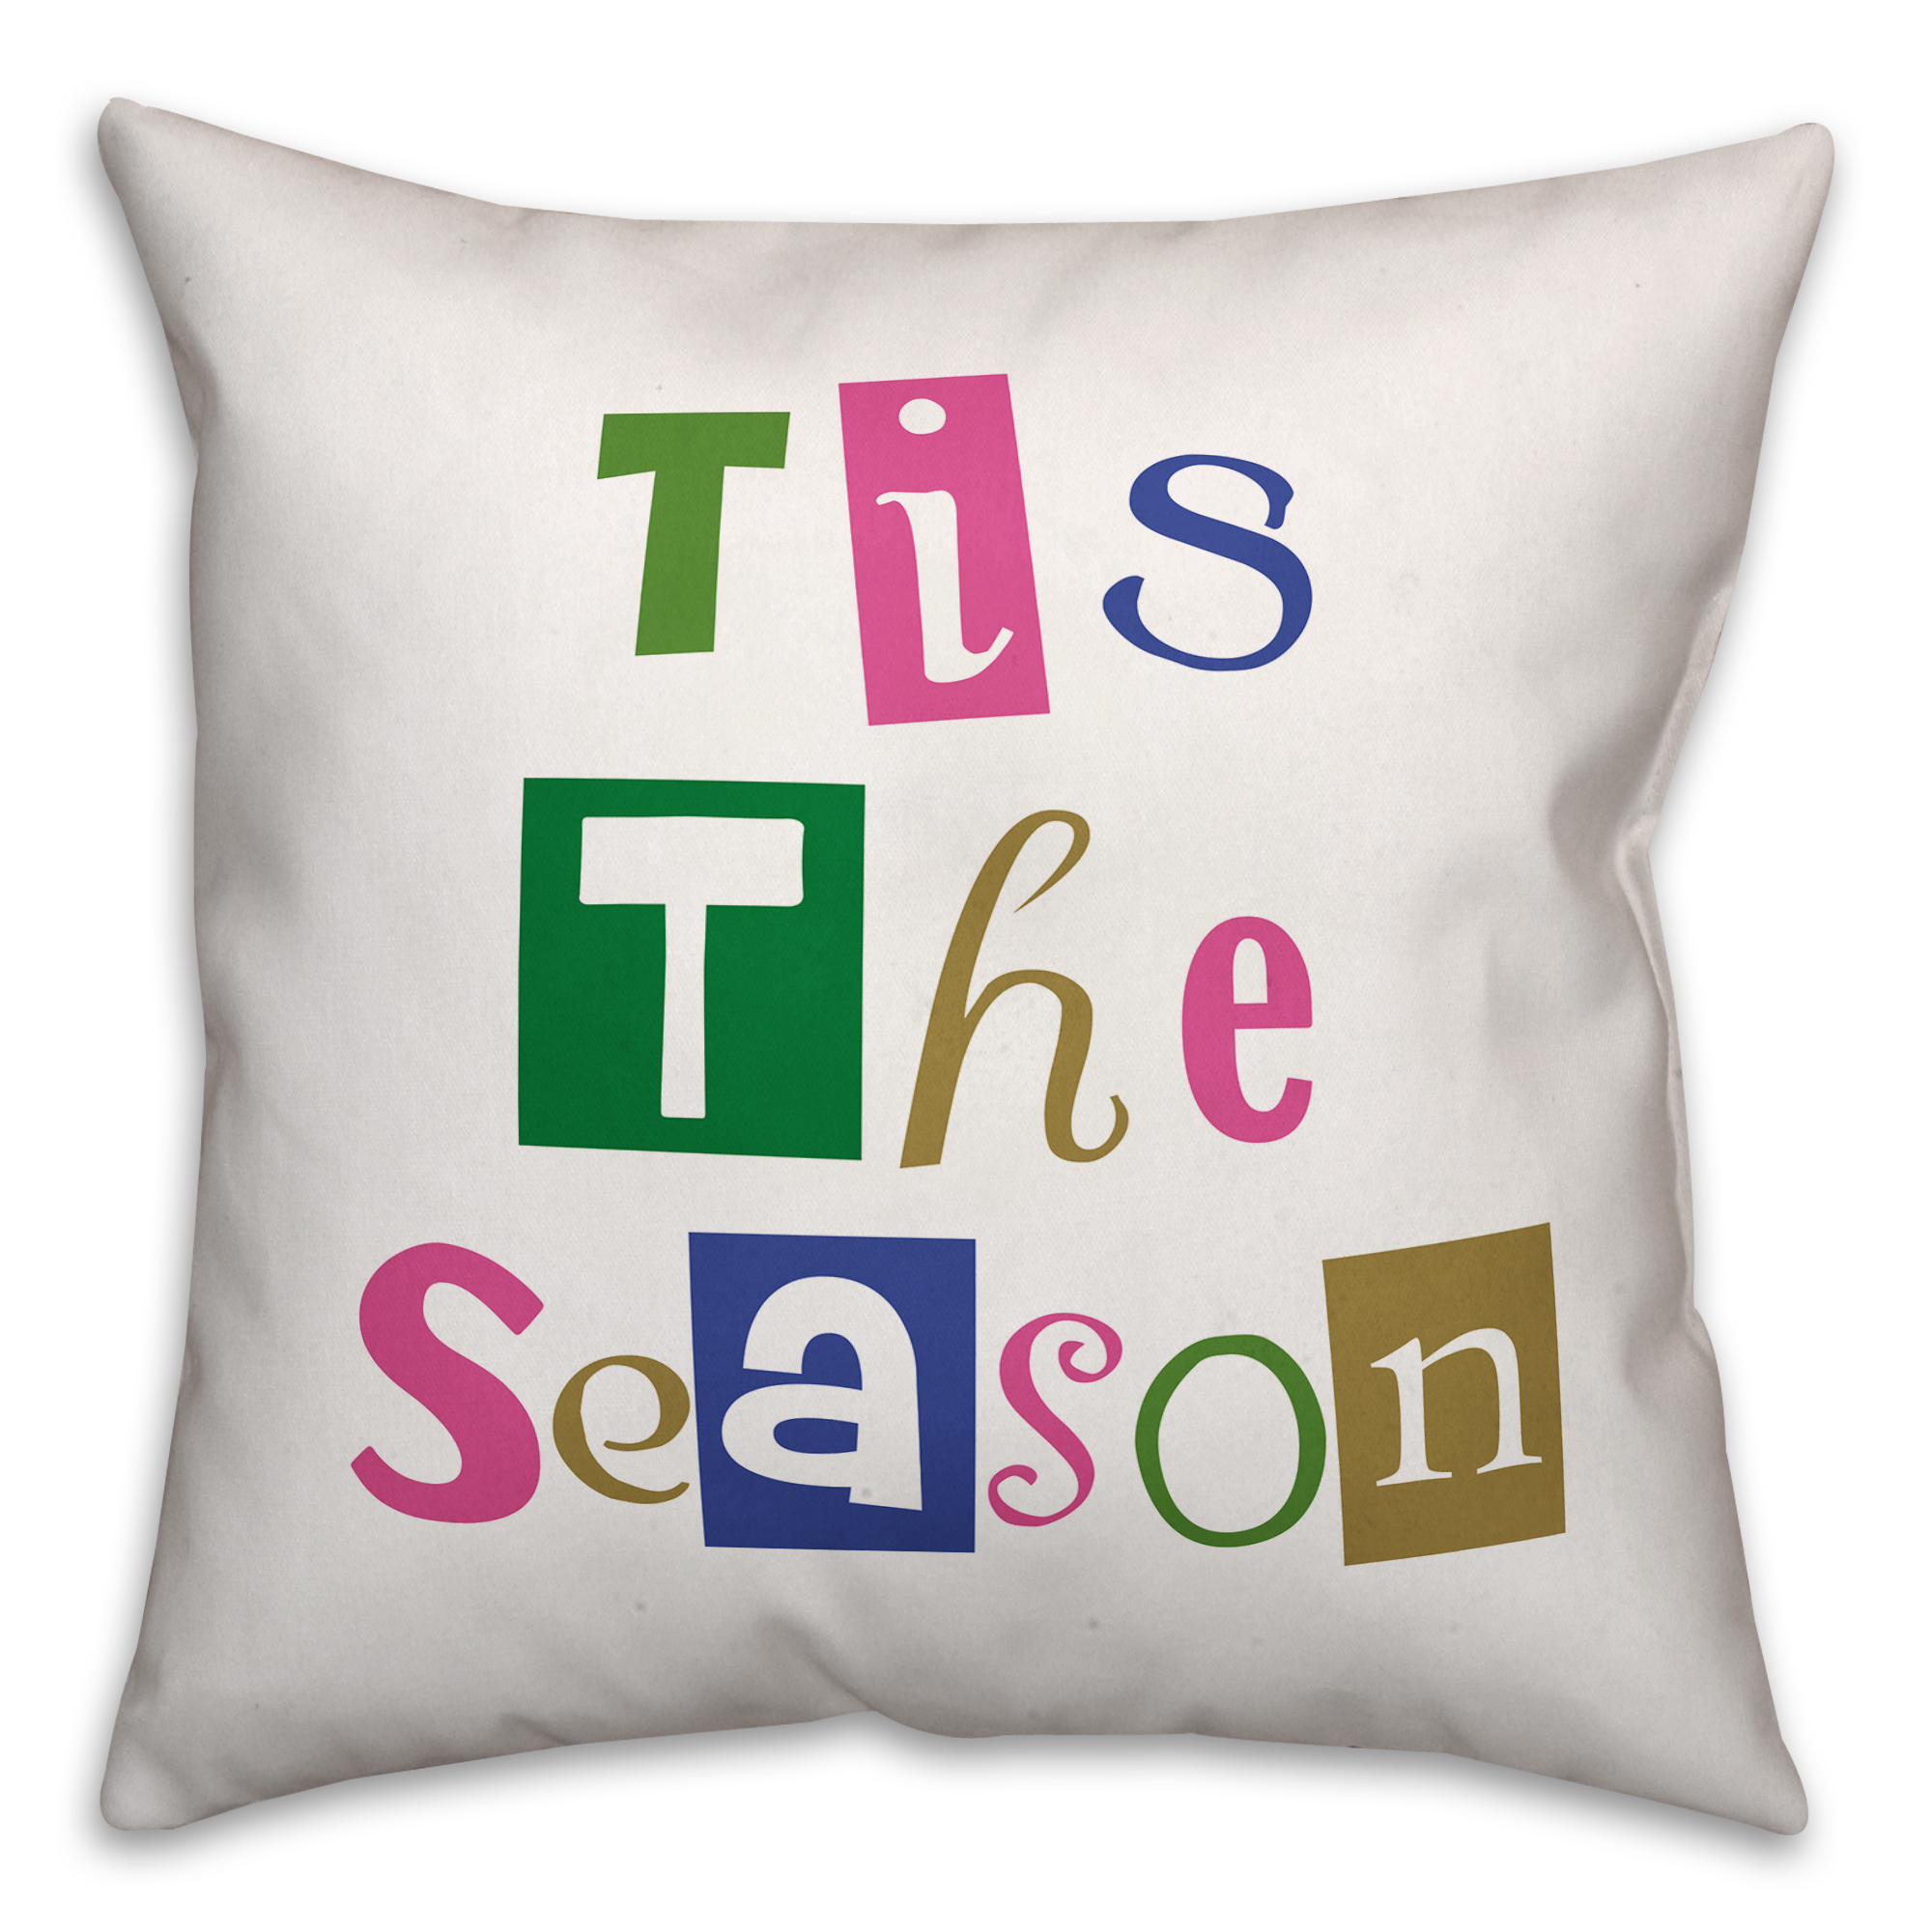 Tis the Season 16x16 Spun Poly Pillow Cover